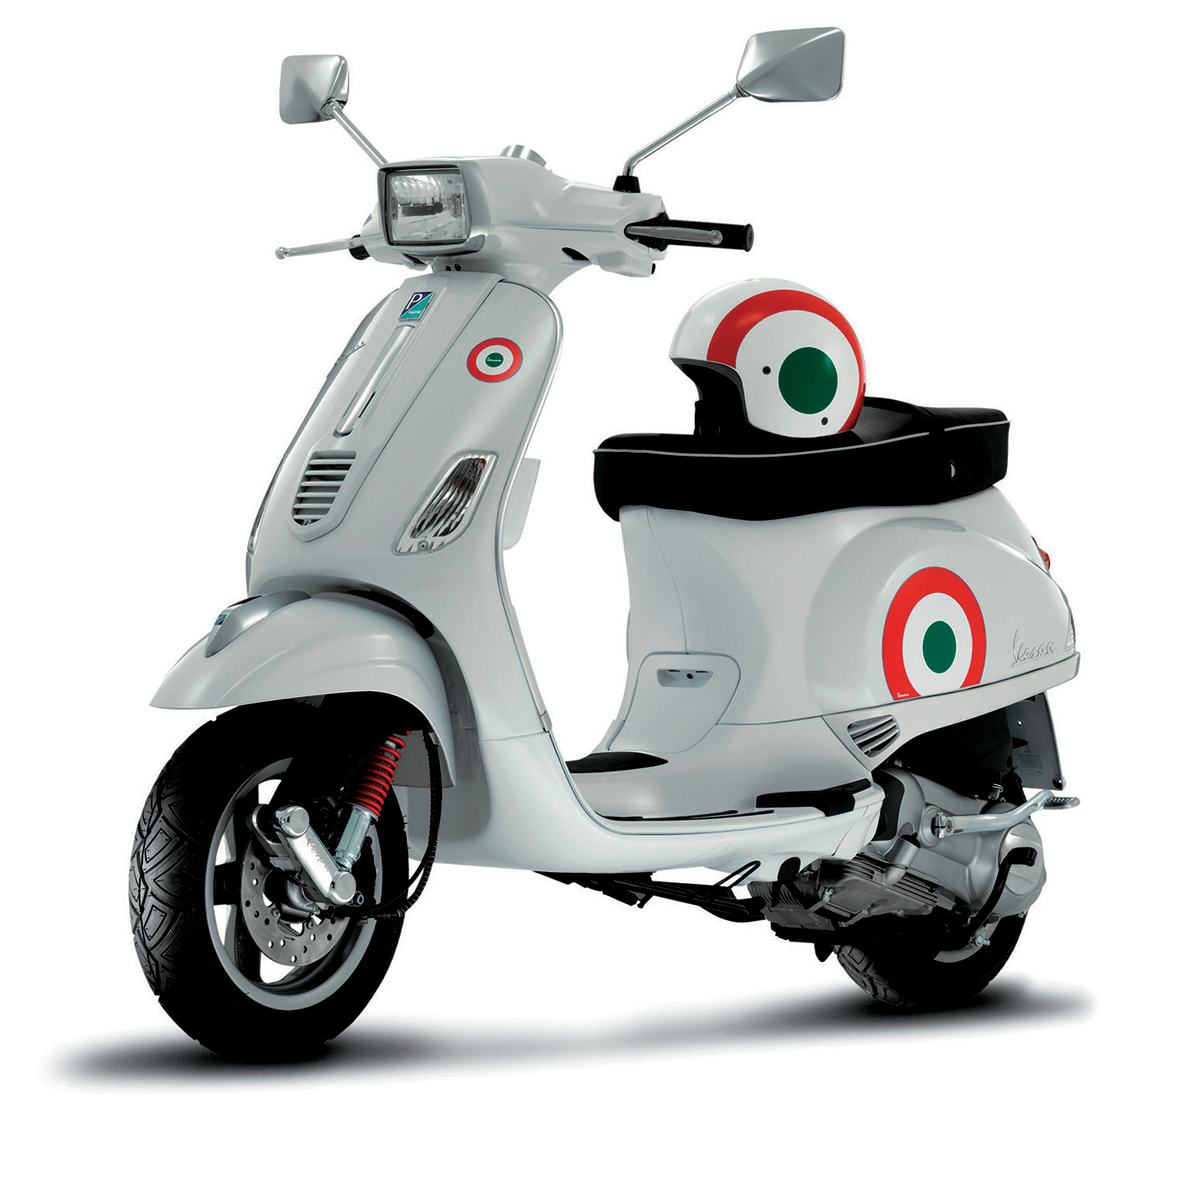 NATION FLAGS DECAL KIT FOR VESPA